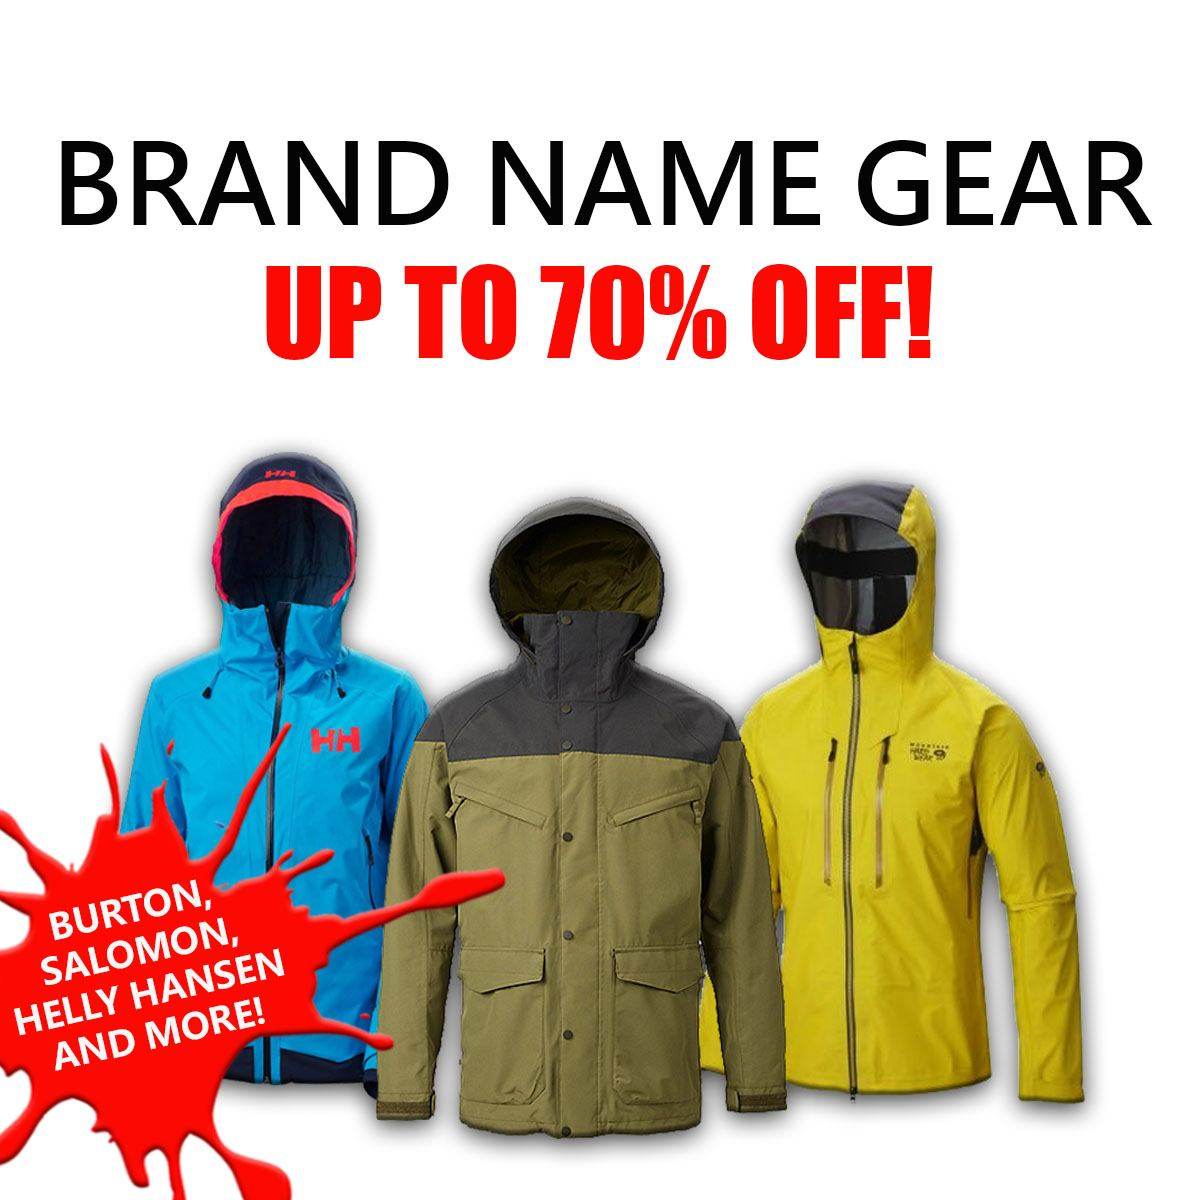 079dea3e6f2 Sports Junkies has an outstanding selection of used and new winter clothes.  We have a large selection of brand name ski and snowboard clothing in stock  at ...